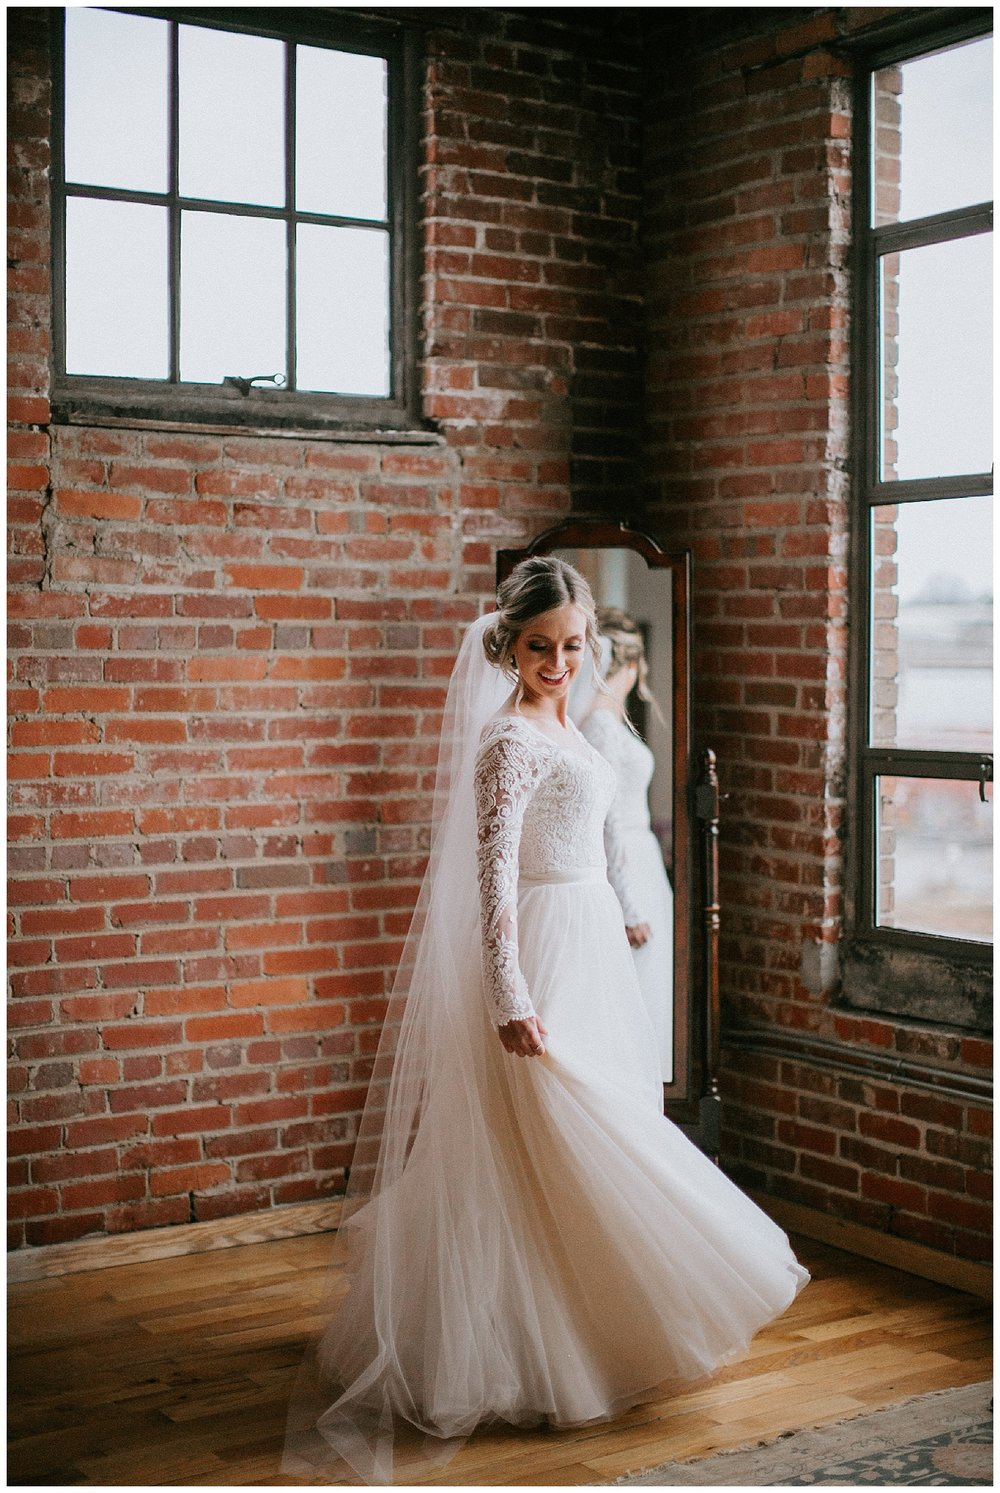 winter-wedding-the standard-knoxville_2019-01-23_0013.jpg